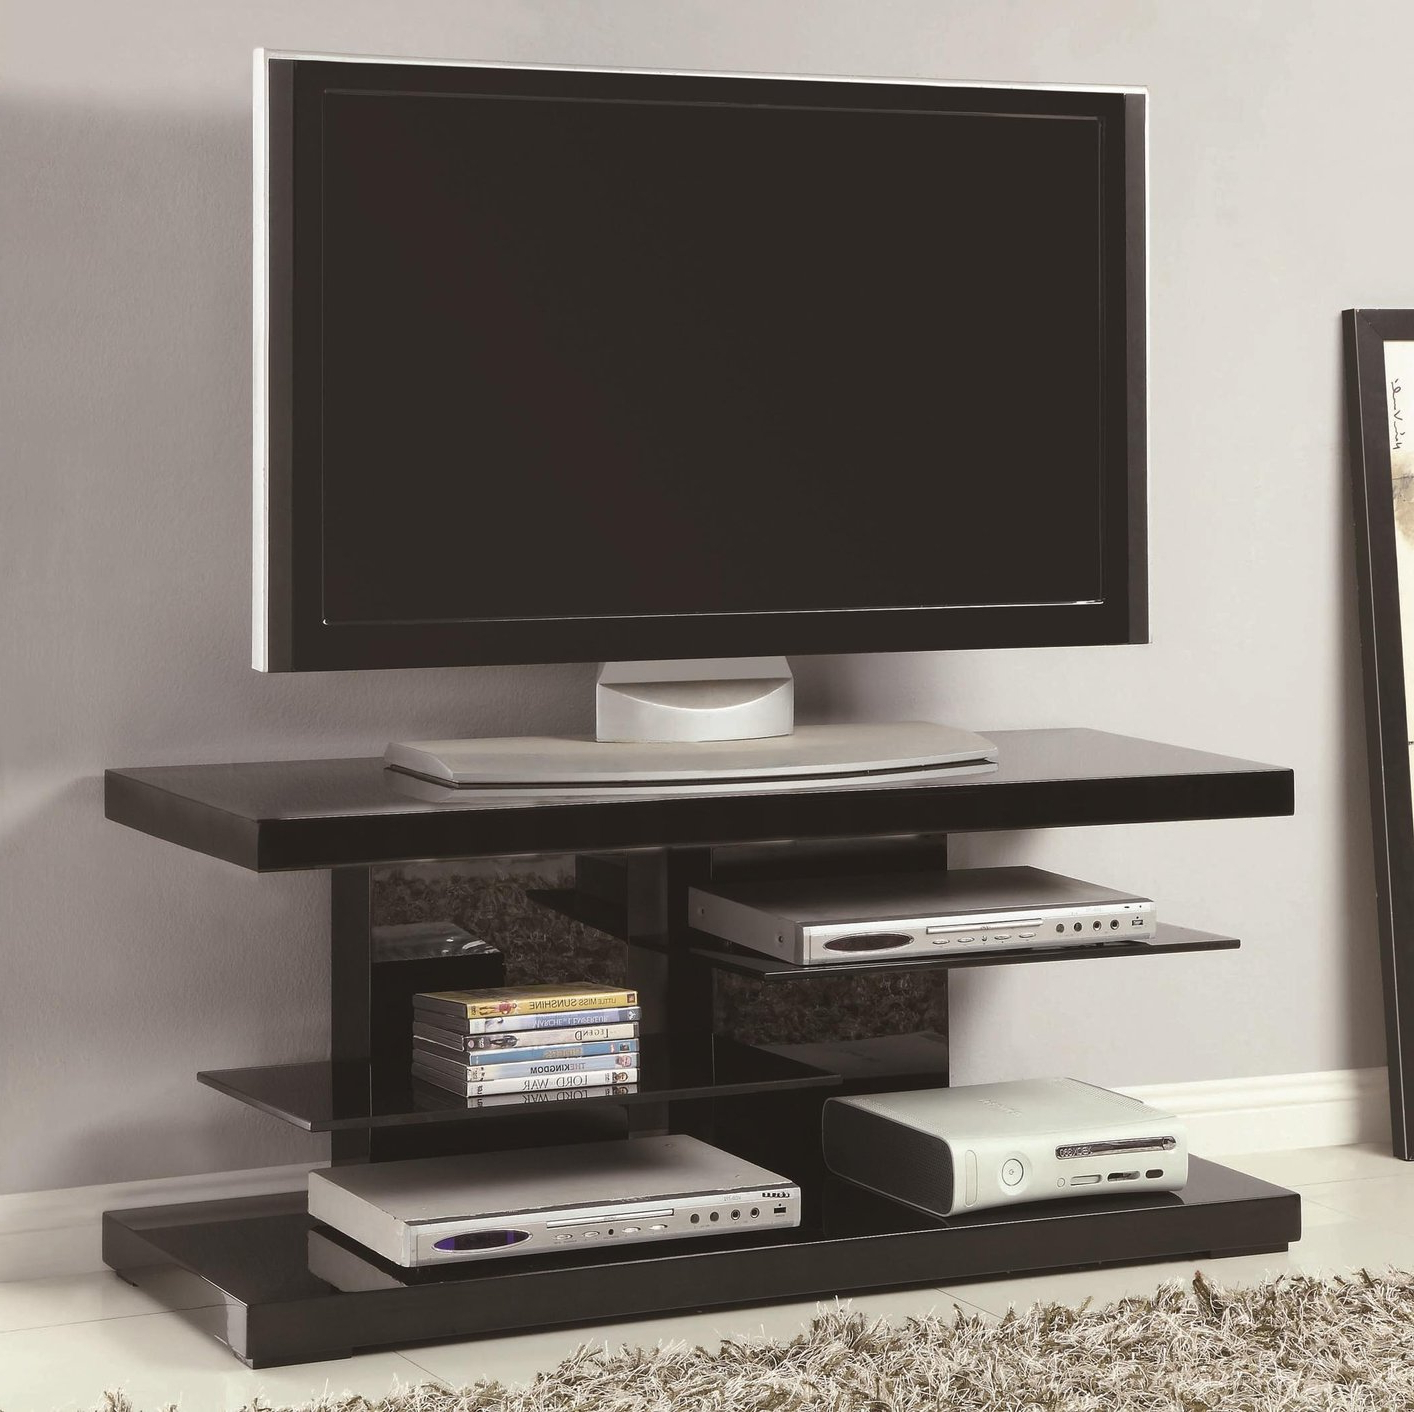 Black Glass Tv Stand – Steal A Sofa Furniture Outlet Los For 2018 Modern Black Floor Glass Tv Stands With Mount (View 1 of 10)